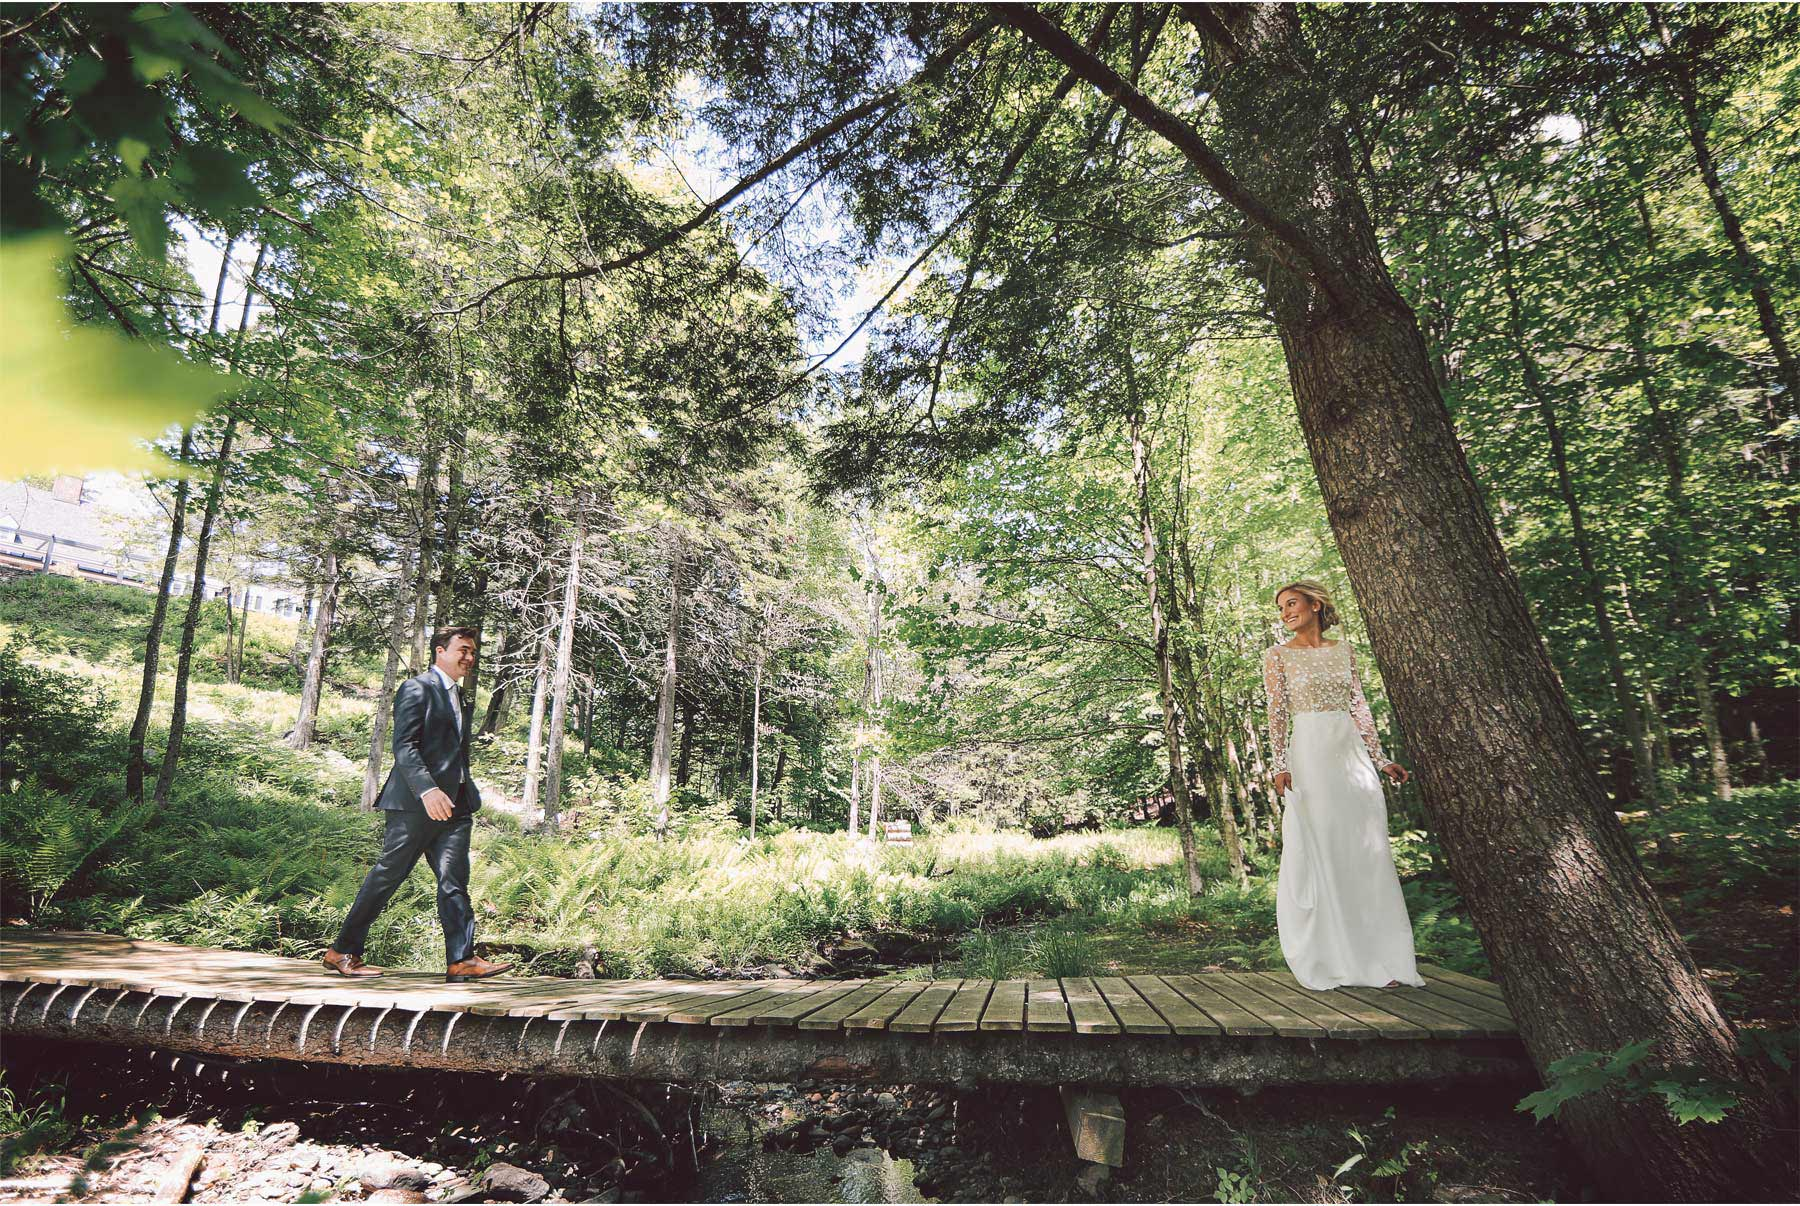 10-Stowe-Vermont-Wedding-Photography-by-Vick-Photography-Edson-Hill-First-Look-Forest-Woods-Mackenzie-and-Jim.jpg